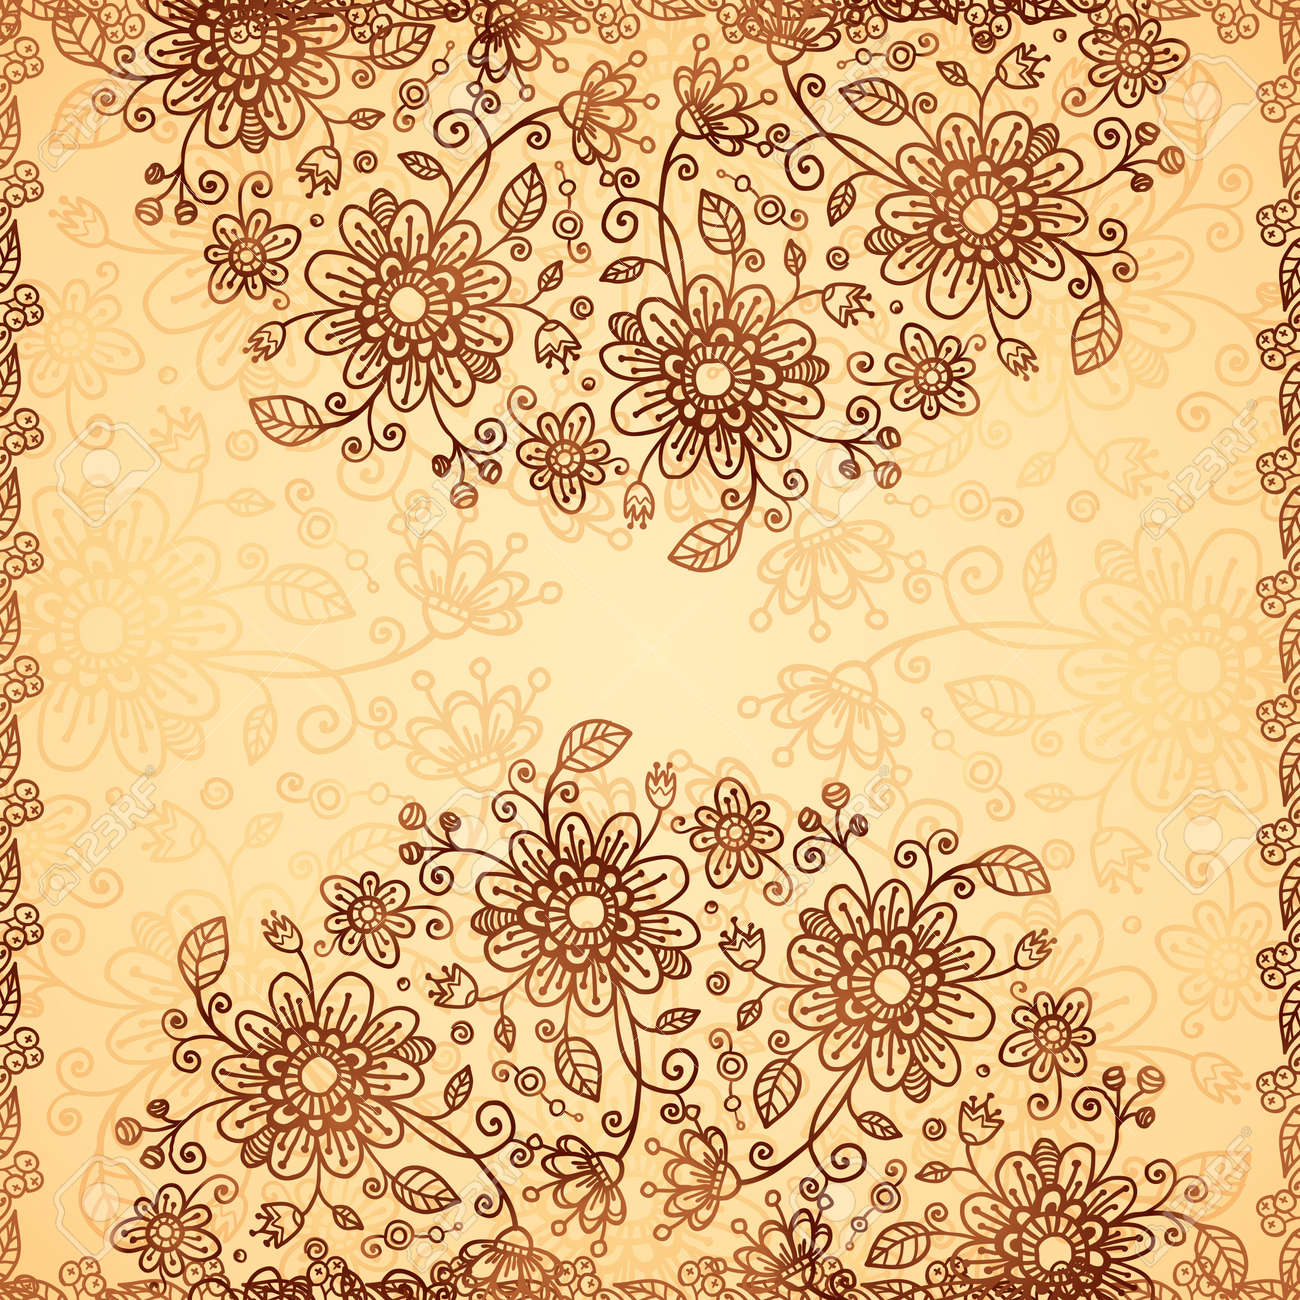 Ornate   doodle chocolate and vanilla flowers background Stock Photo - 17540554